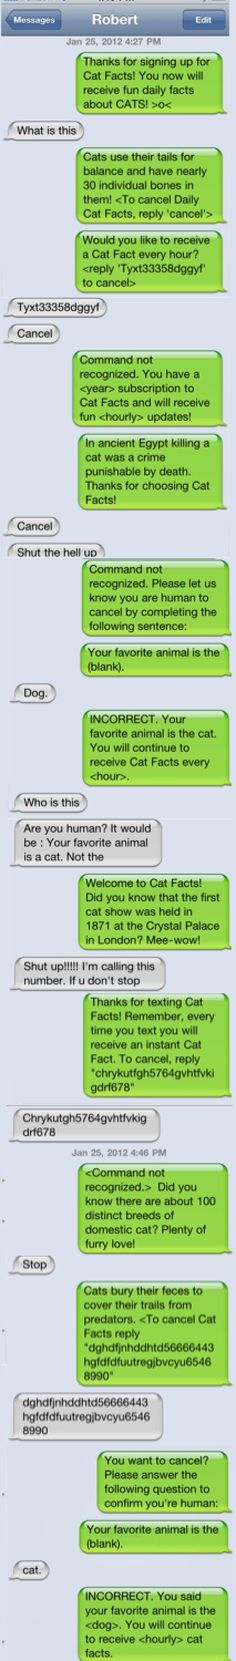 BEST PRANK TEXT EVER!! I'm sure this is a repin, but it makes me cry with laughter every time it comes up.